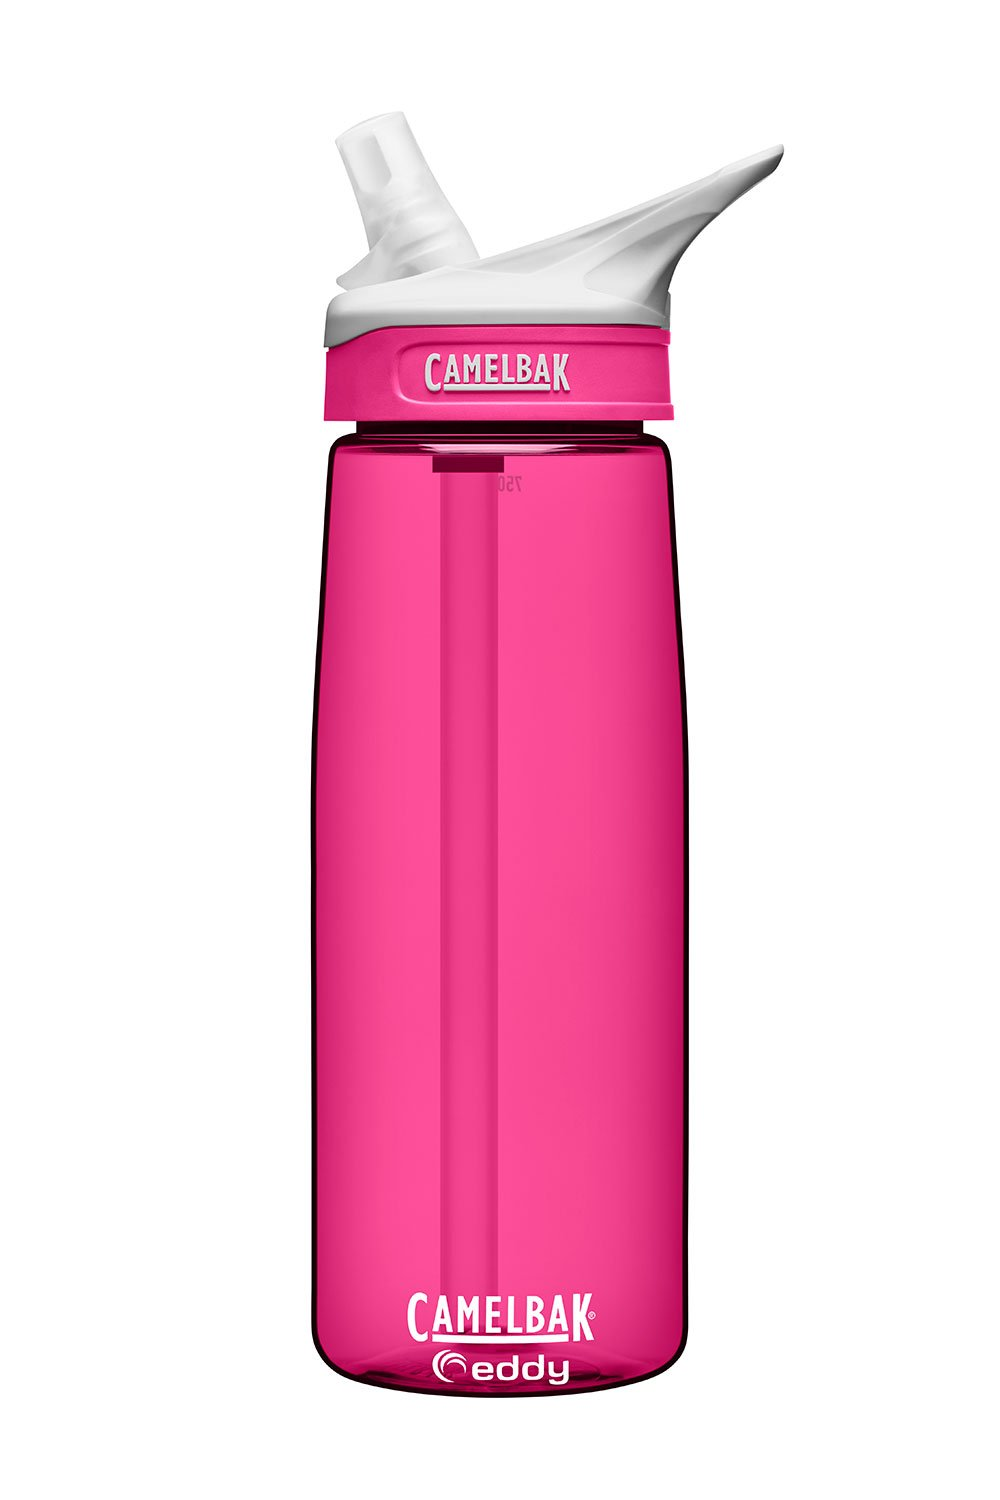 CamelBak Eddy Water Bottle, Dragon Fruit.75-Liter